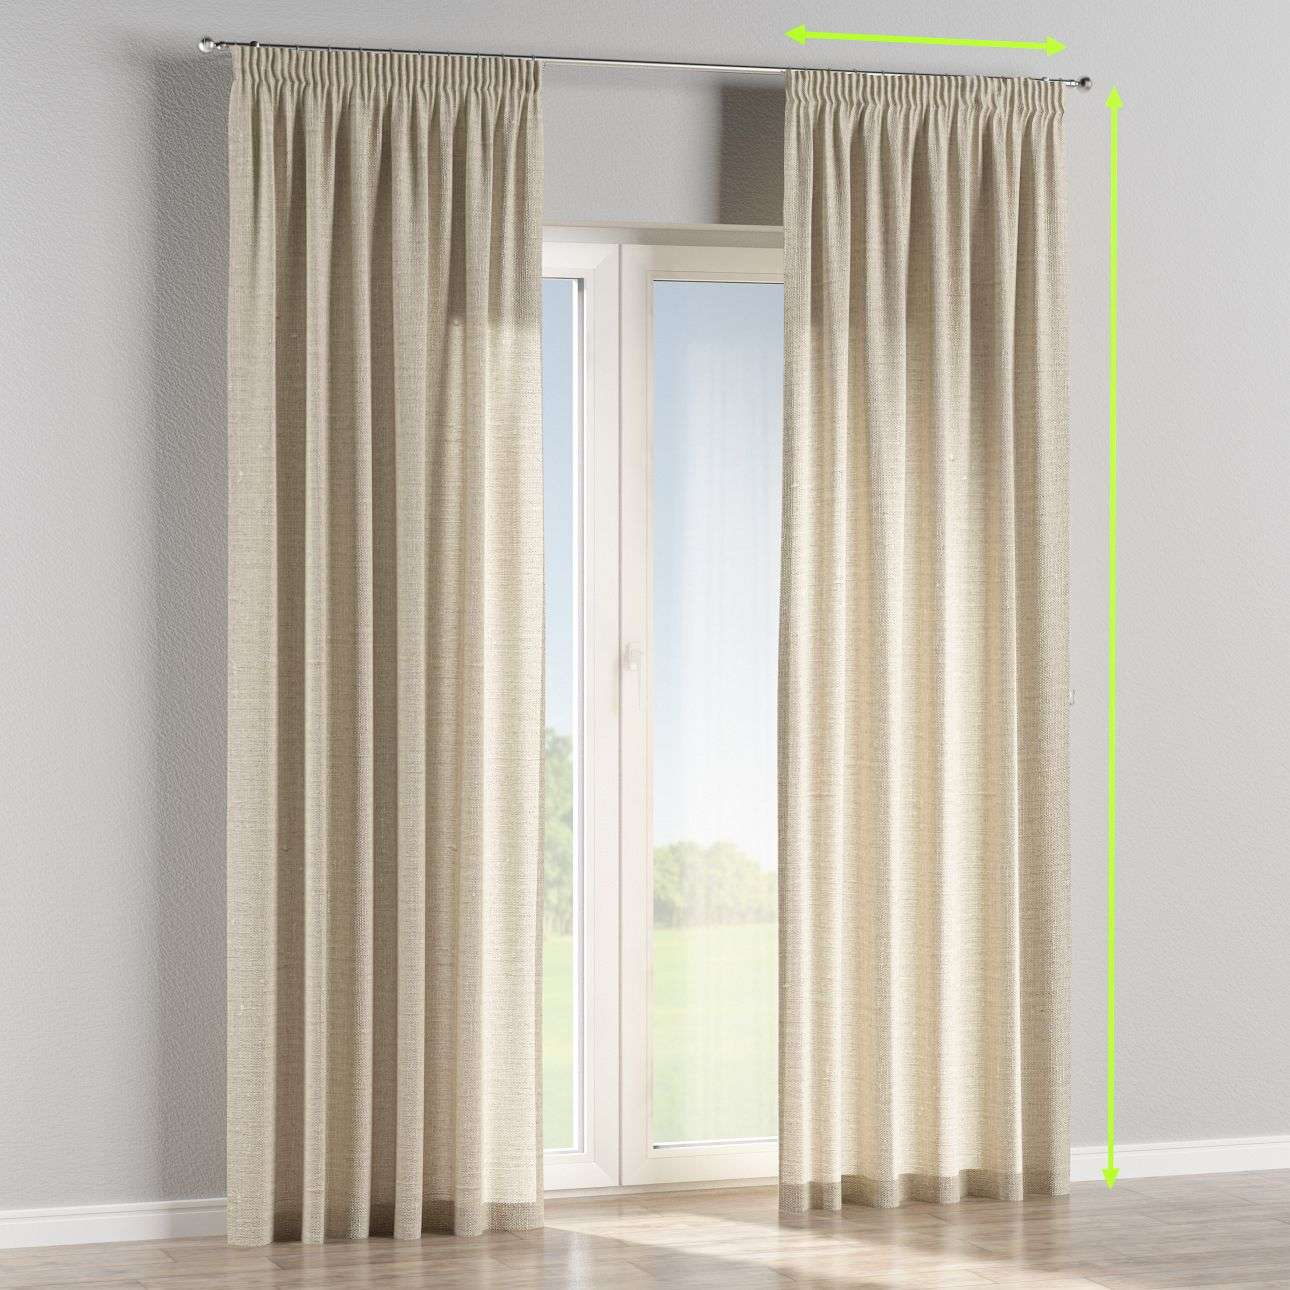 Pencil pleat lined curtains in collection Linen , fabric: 392-05